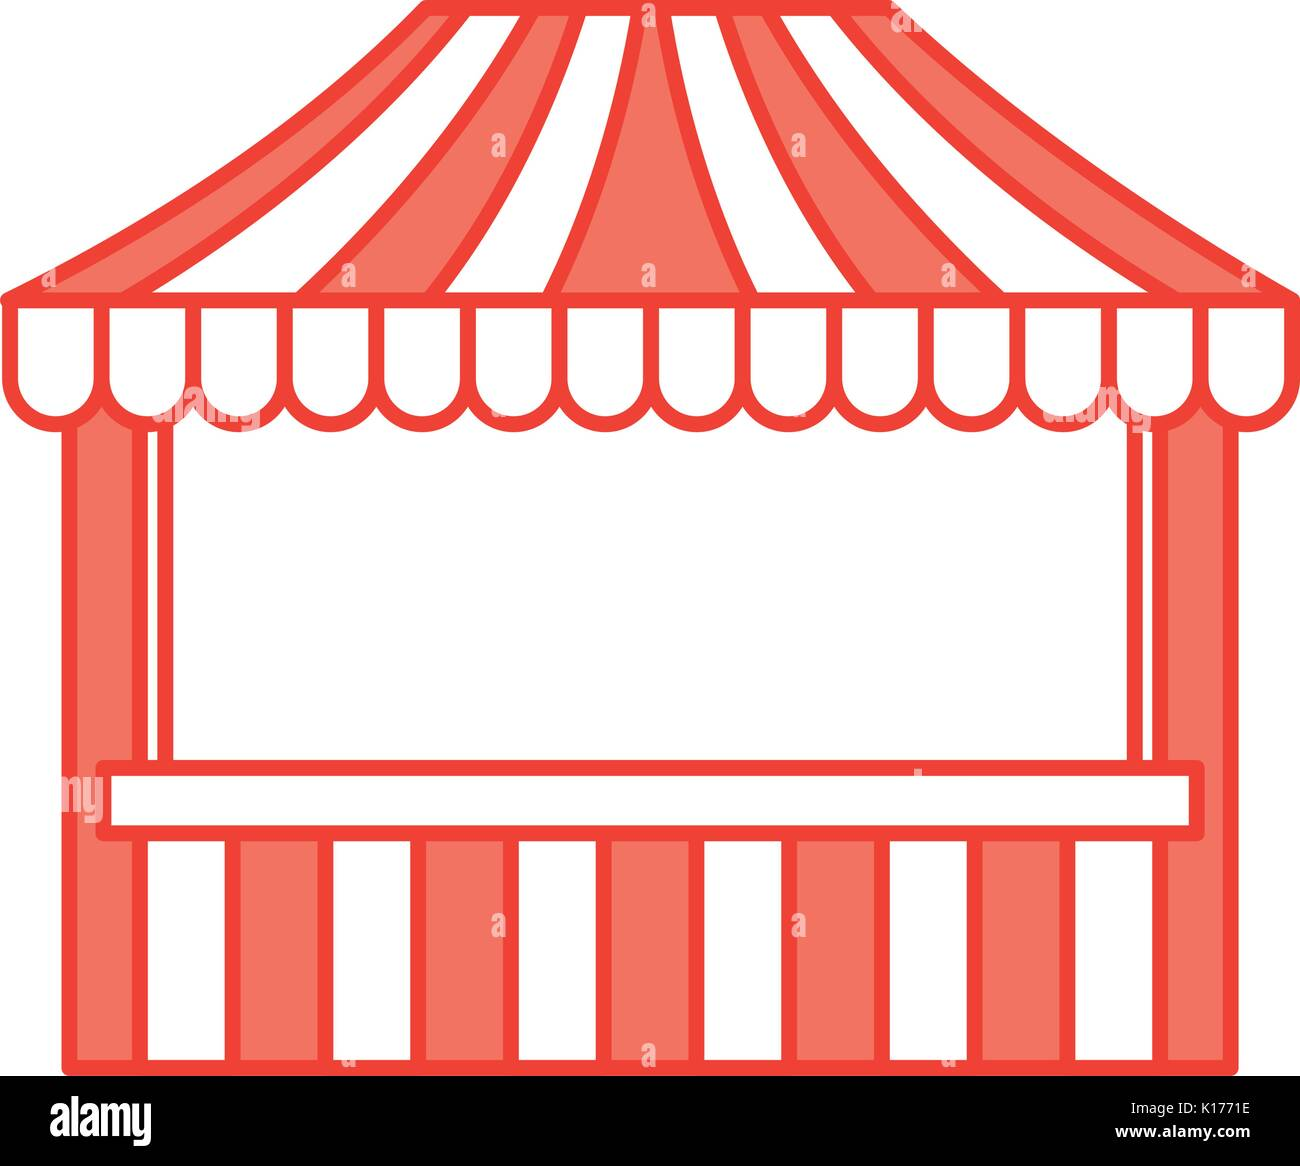 hight resolution of ticket shop carnival icon stock vector